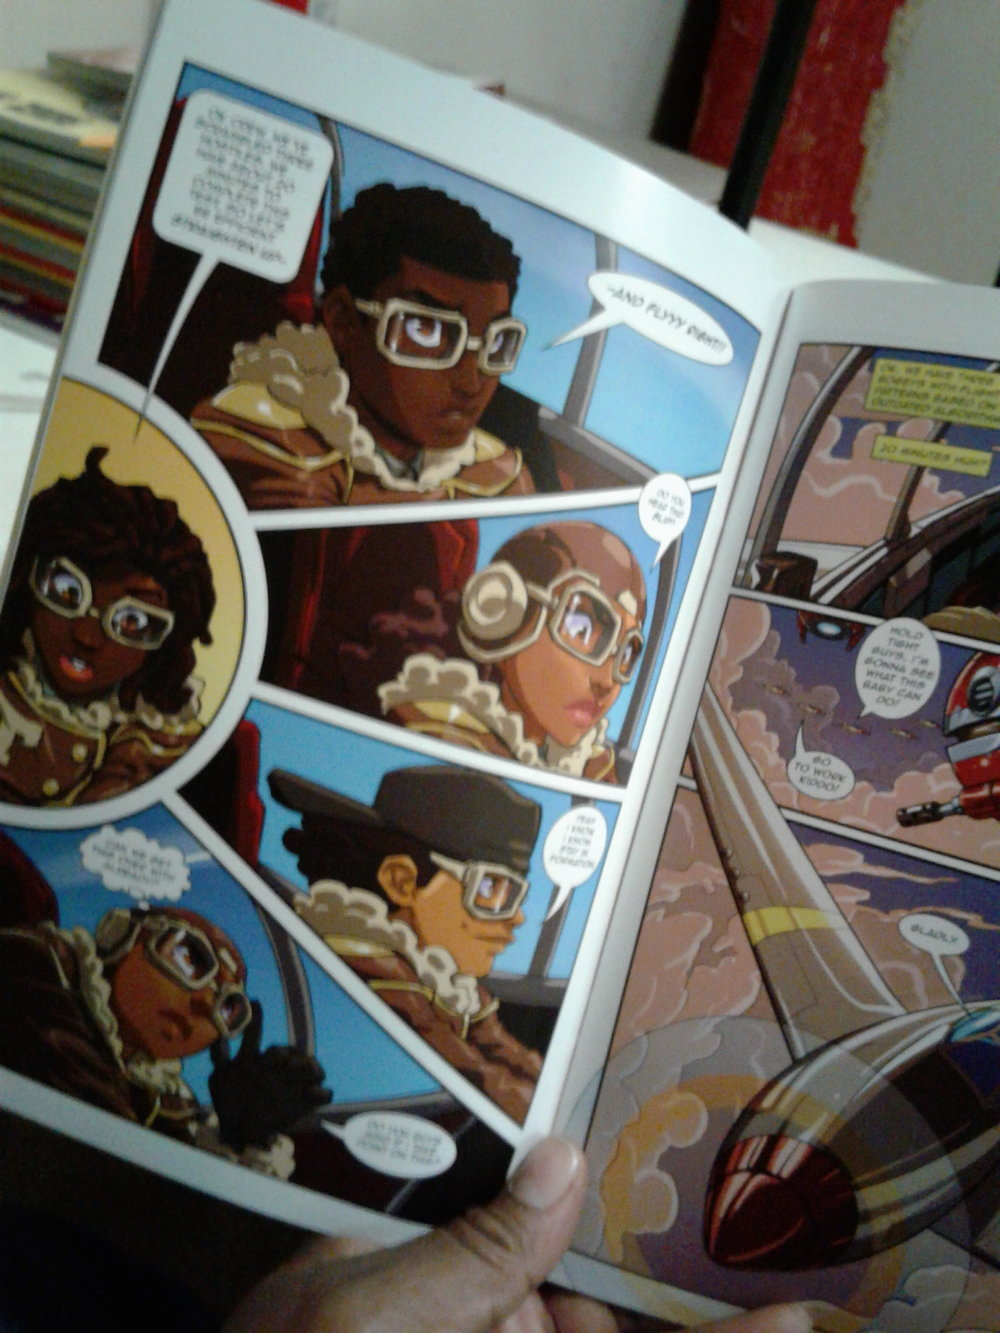 Tuskegee Heirs Comicbook interior. Young pilots flying planes that turn into robots.